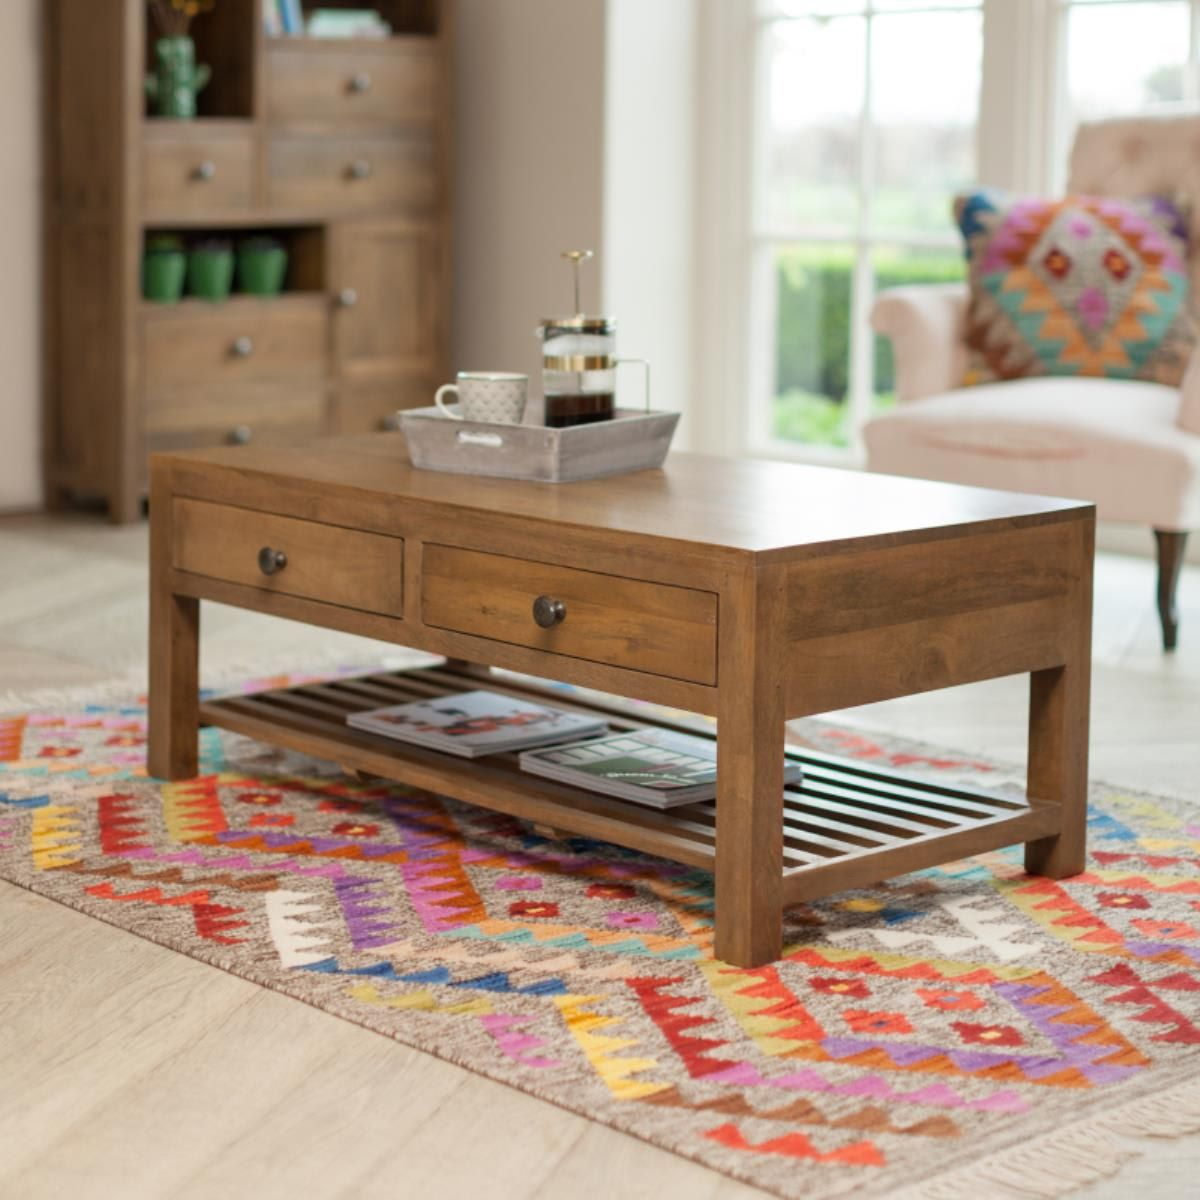 Sundaya Drawer Store Coffee Table Coffee Table Table Slatted Shelves [ 1200 x 1200 Pixel ]